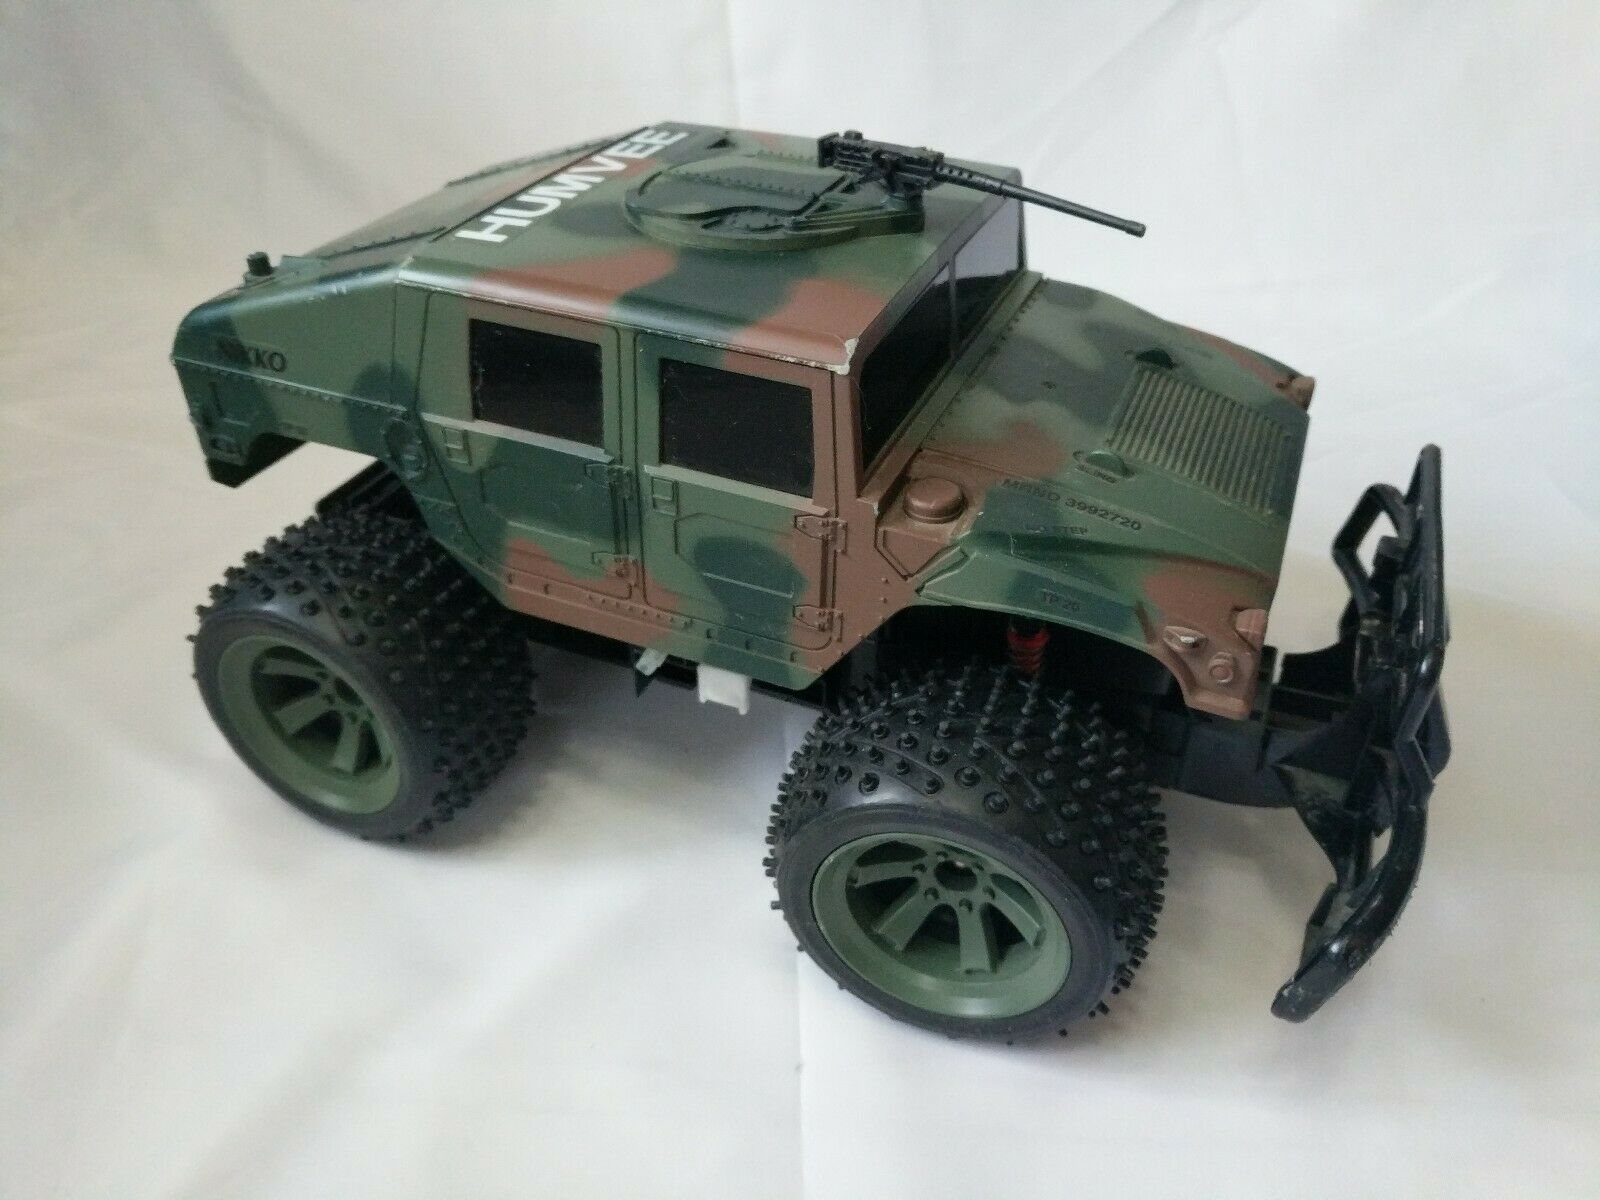 NIKKO 1 10 Scale Military Camouflage Hummer HUMAVEE Personlig transportör RC Truck Car